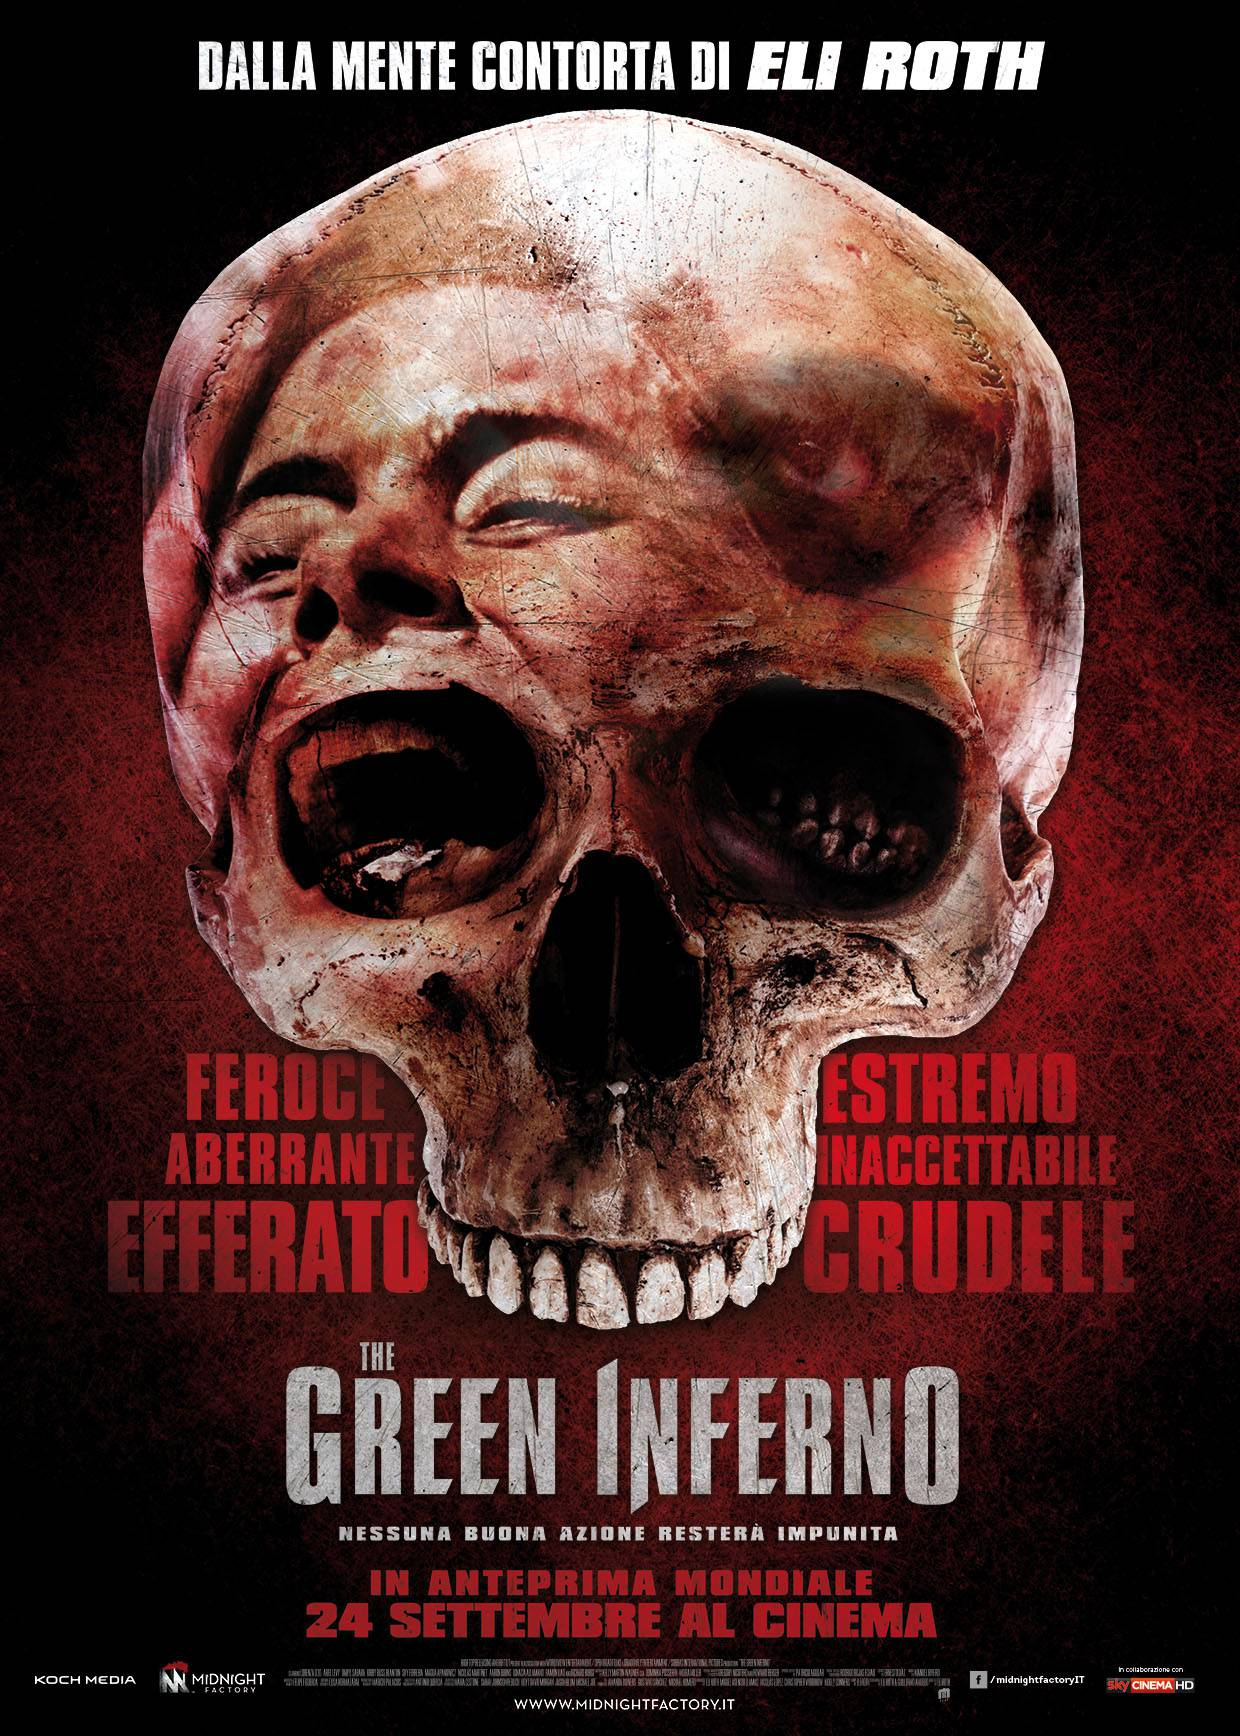 The-Green-Inferno-poster-ITA.jpg